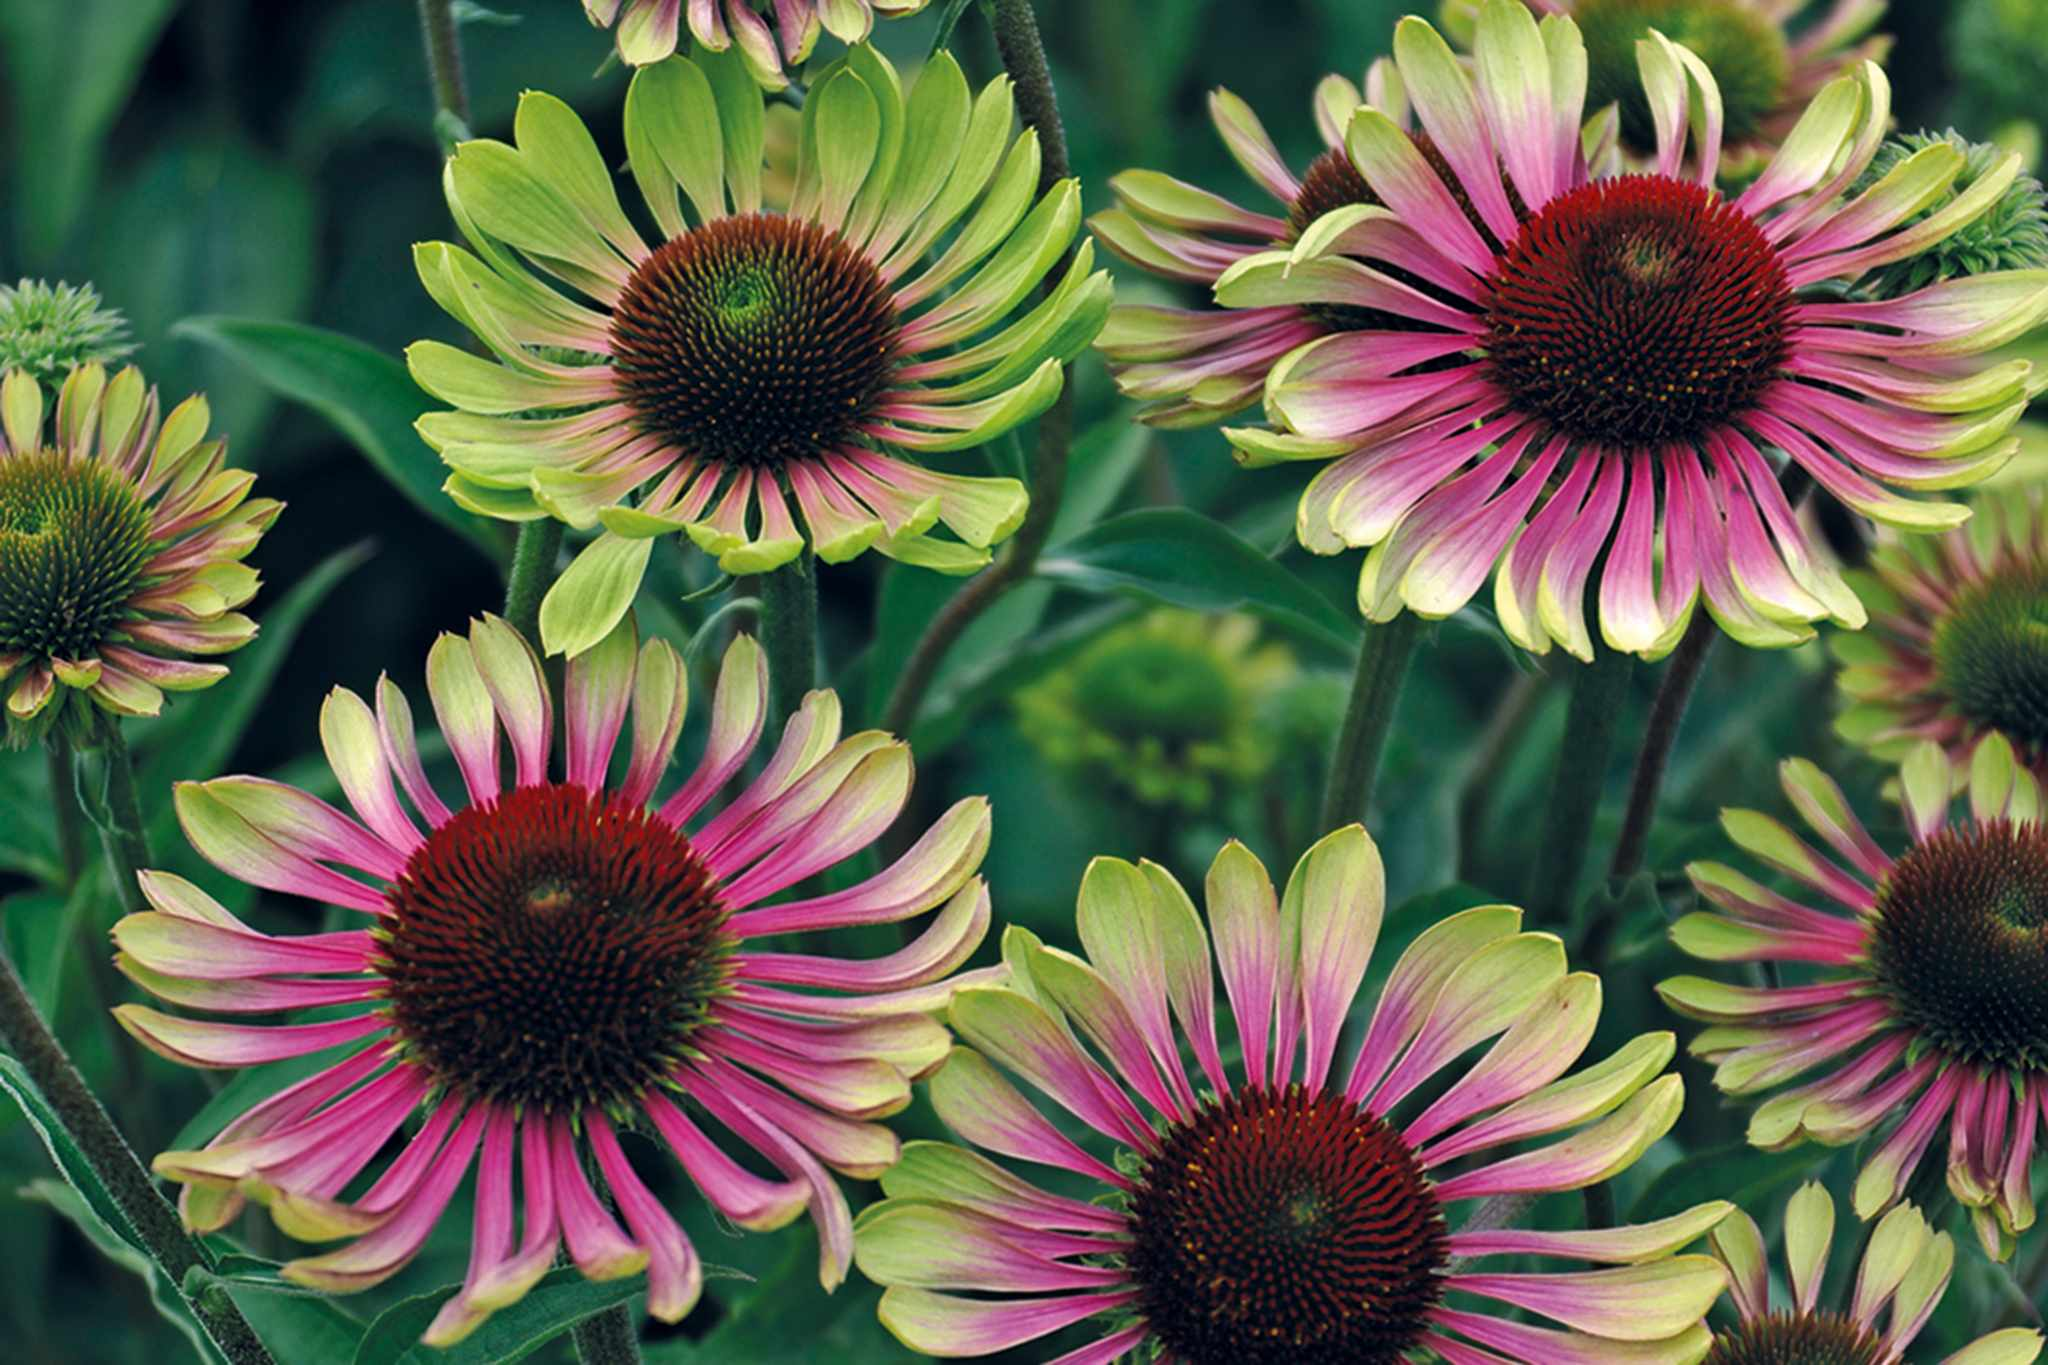 tandm-echinacea-green-twister-bare-root-2048-1365